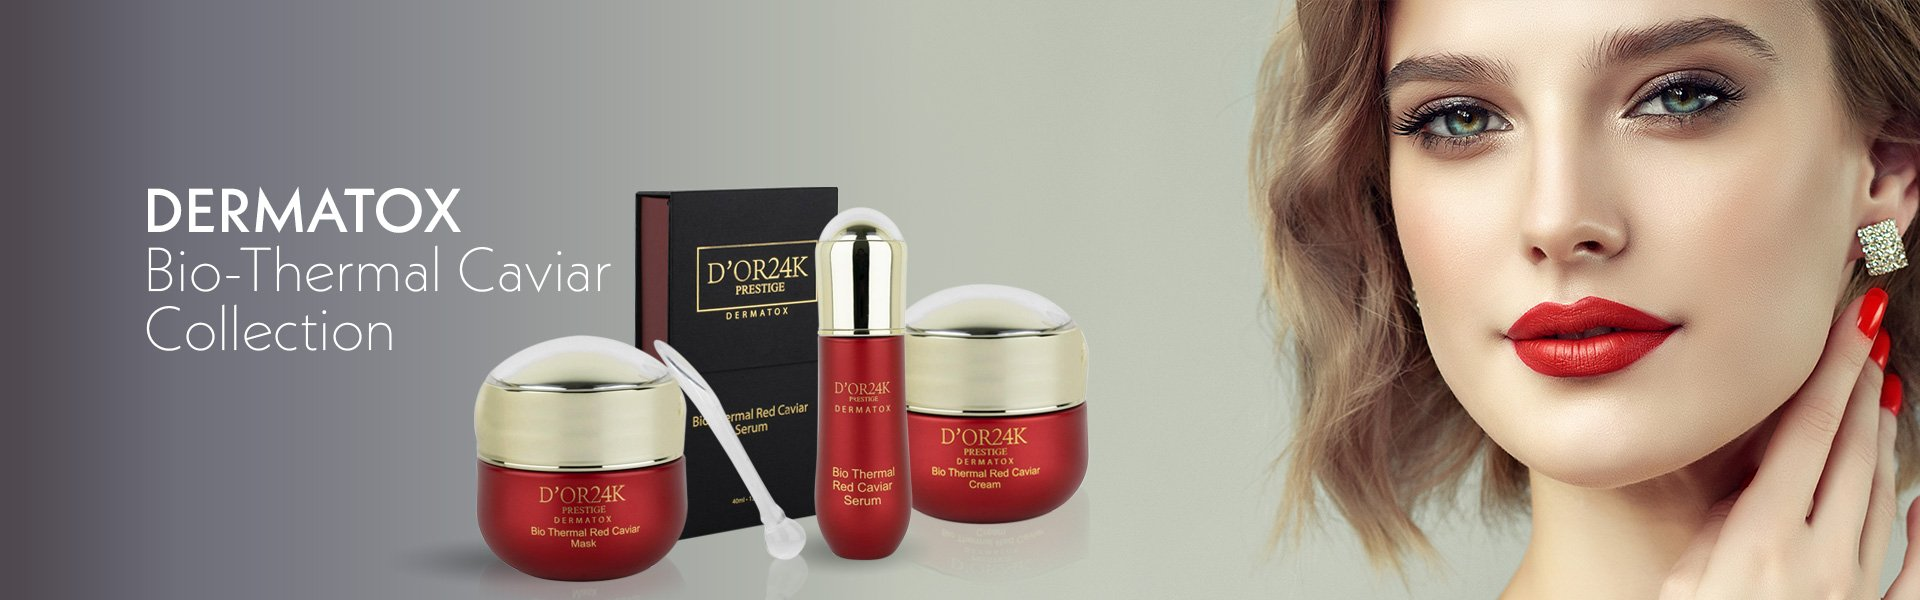 Dermatox Collection